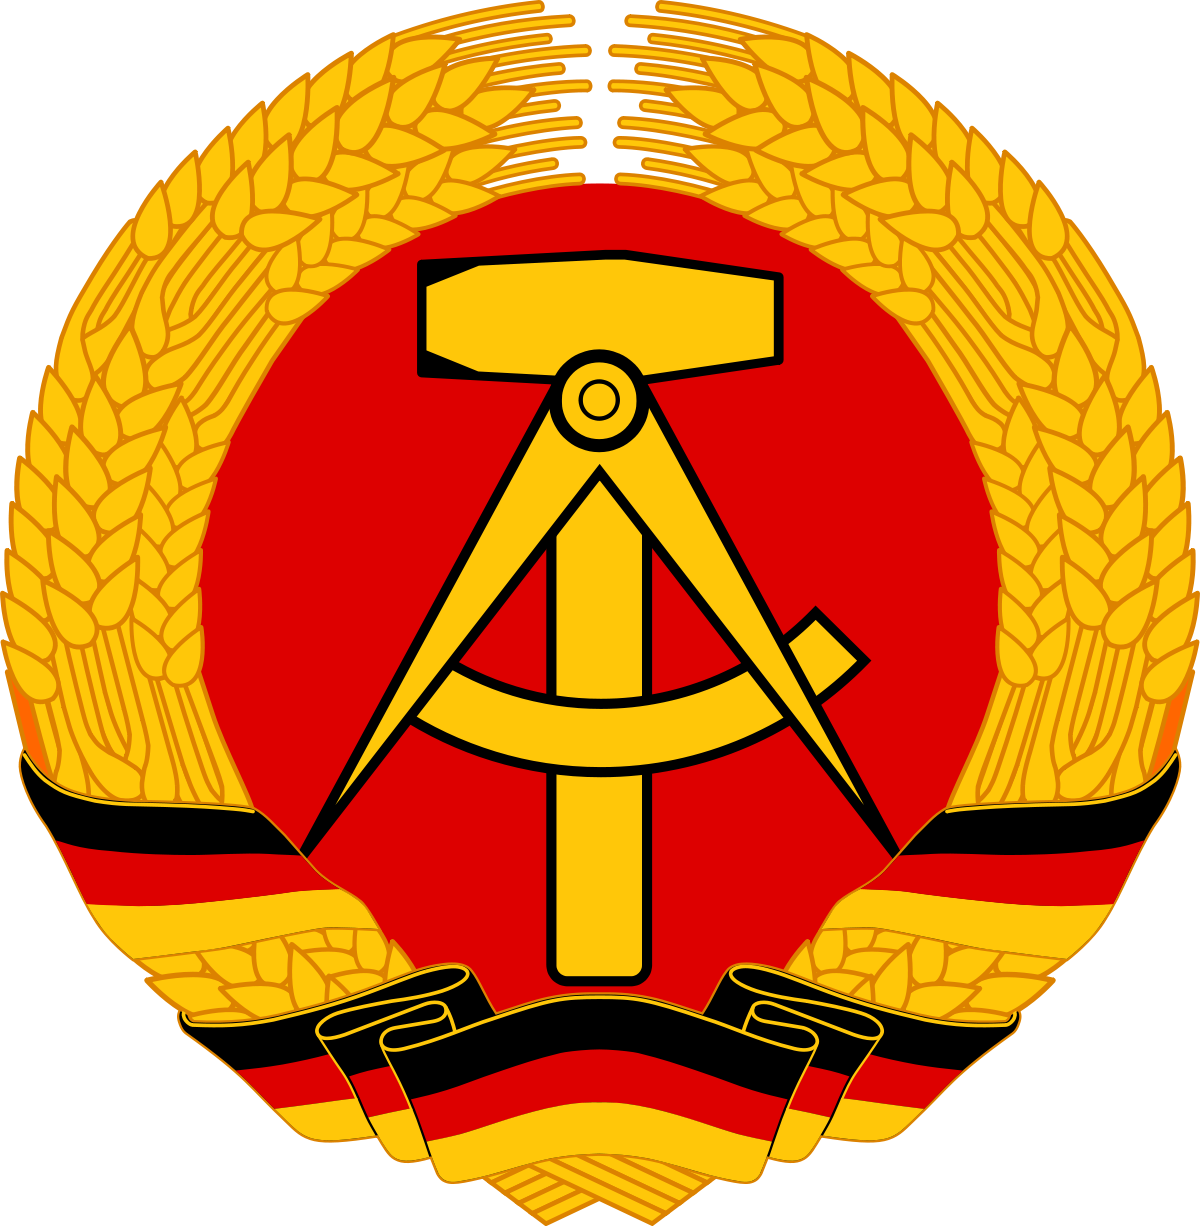 Germany clipart yellow. National emblem of east